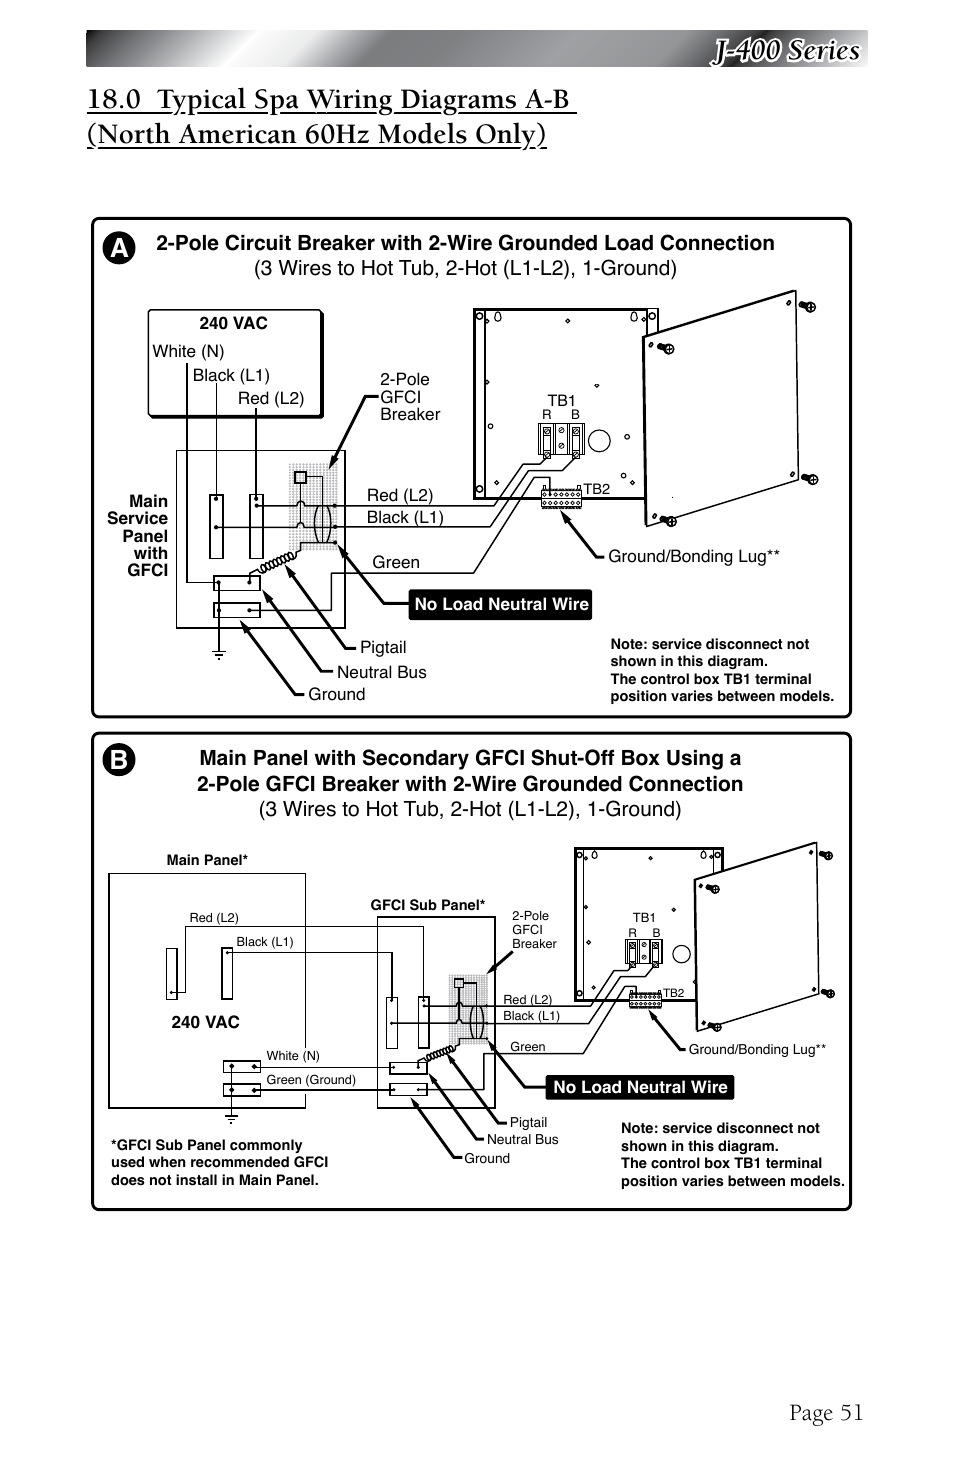 J 400 series page 51 jacuzzi j 480 user manual page 55 70 asfbconference2016 Choice Image